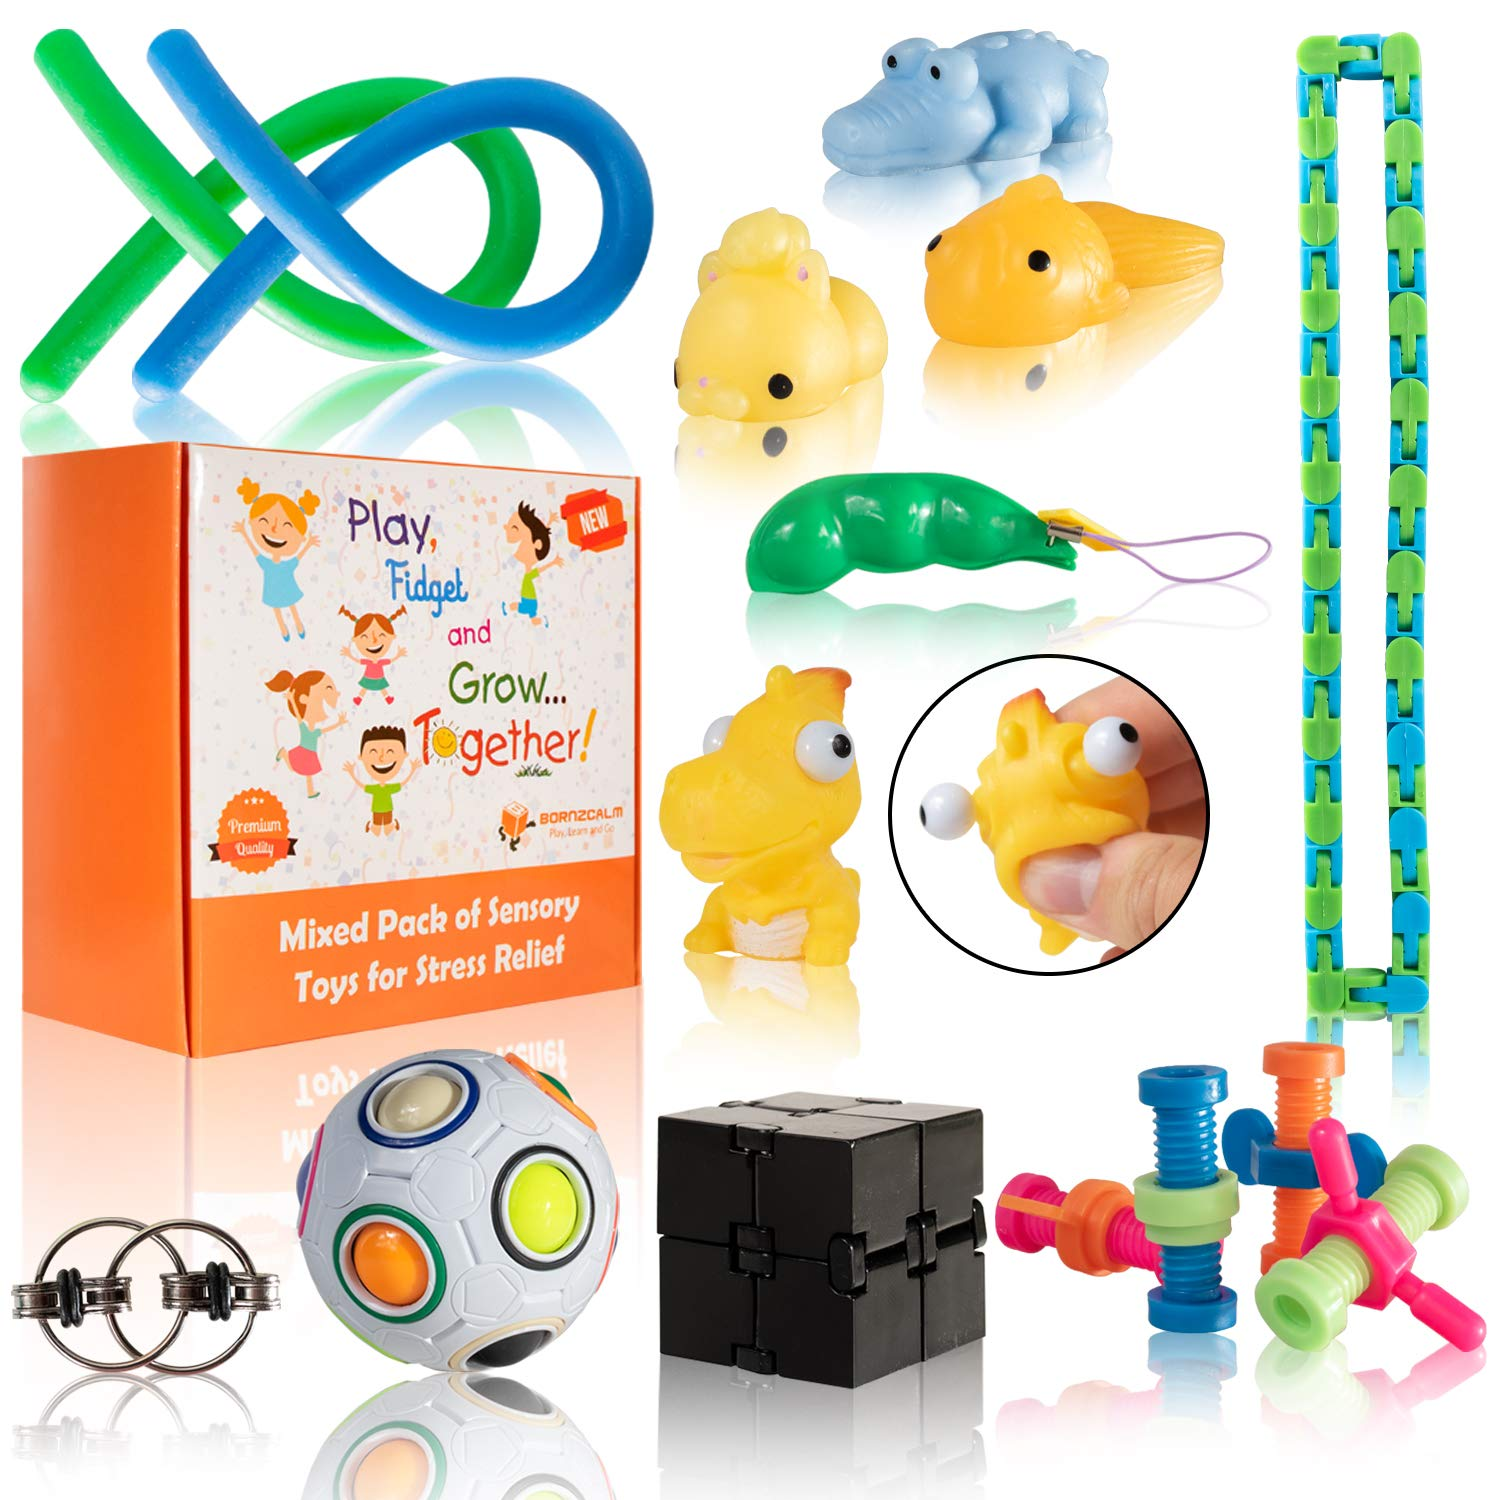 Fidget Toys for Sensory Kids Pack - Fidgits and Sensory Toys for Autistic Children Set as Sensory Fidgets for Classroom - Stress Relief and Calm Down Toys Kit Perfect for ADHD ADD Anxiety Autism by Born2Calm